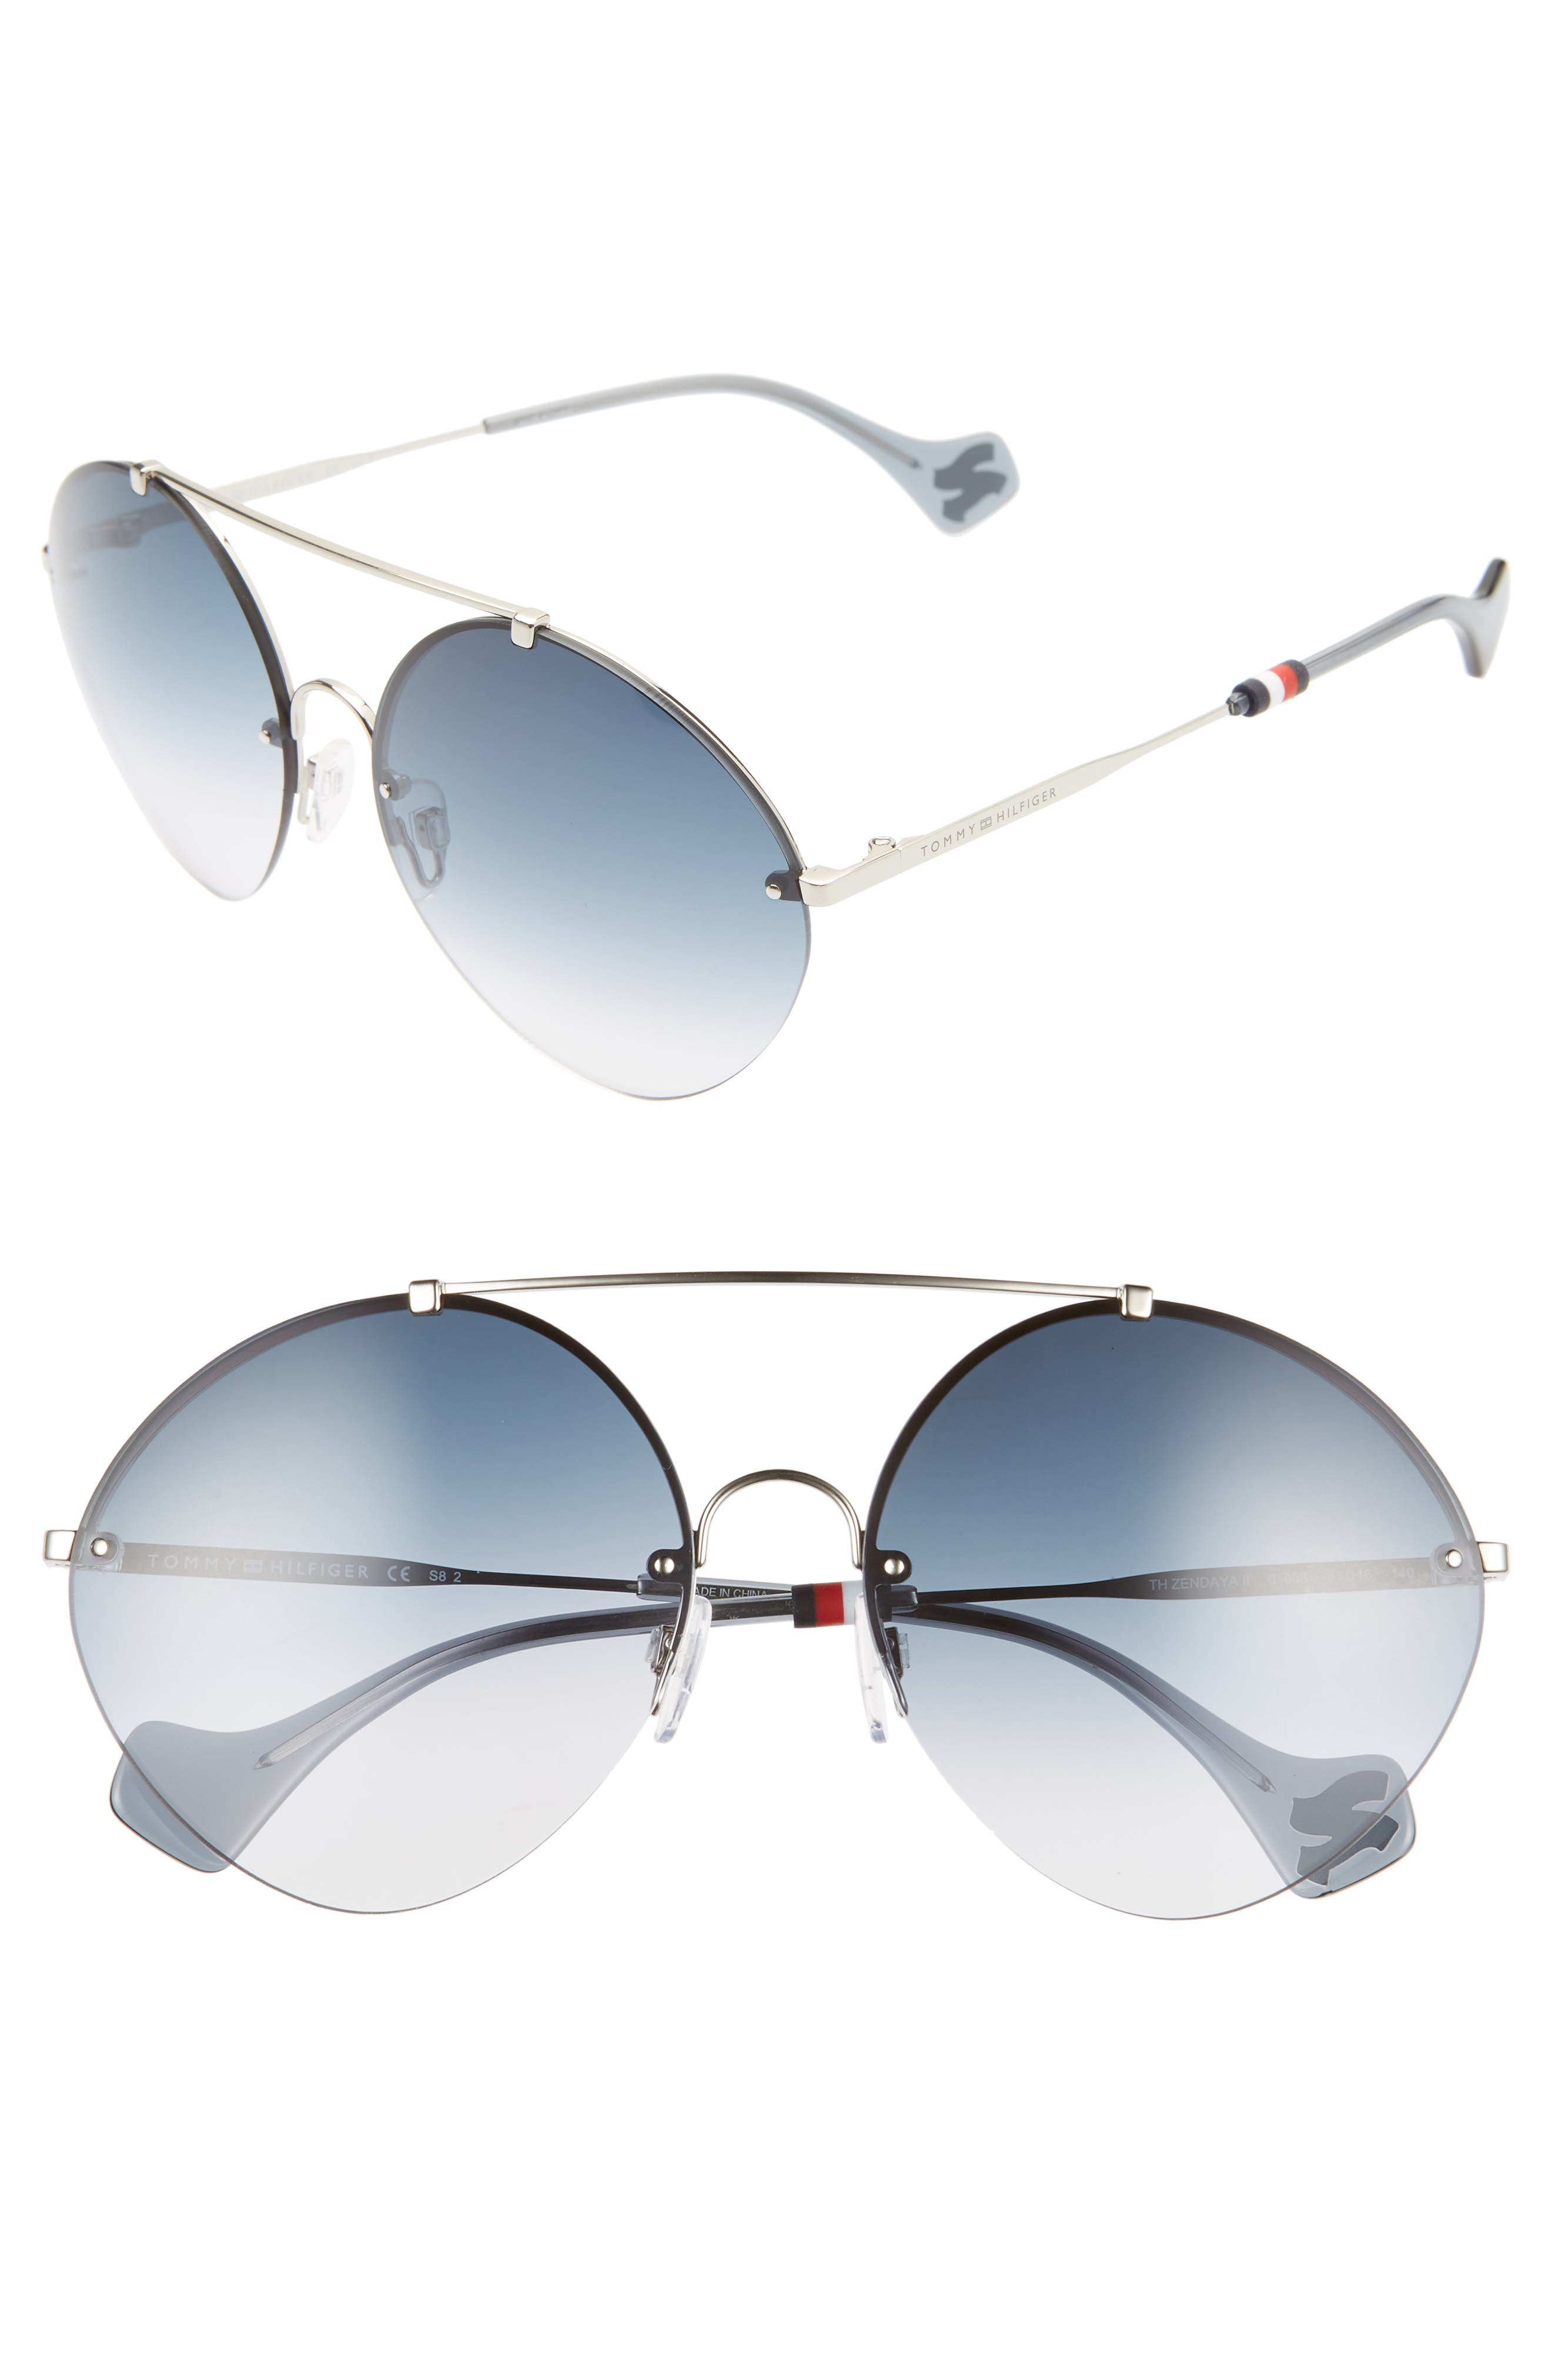 64e2192bea Tommy Hilfiger Sunglasses for Women